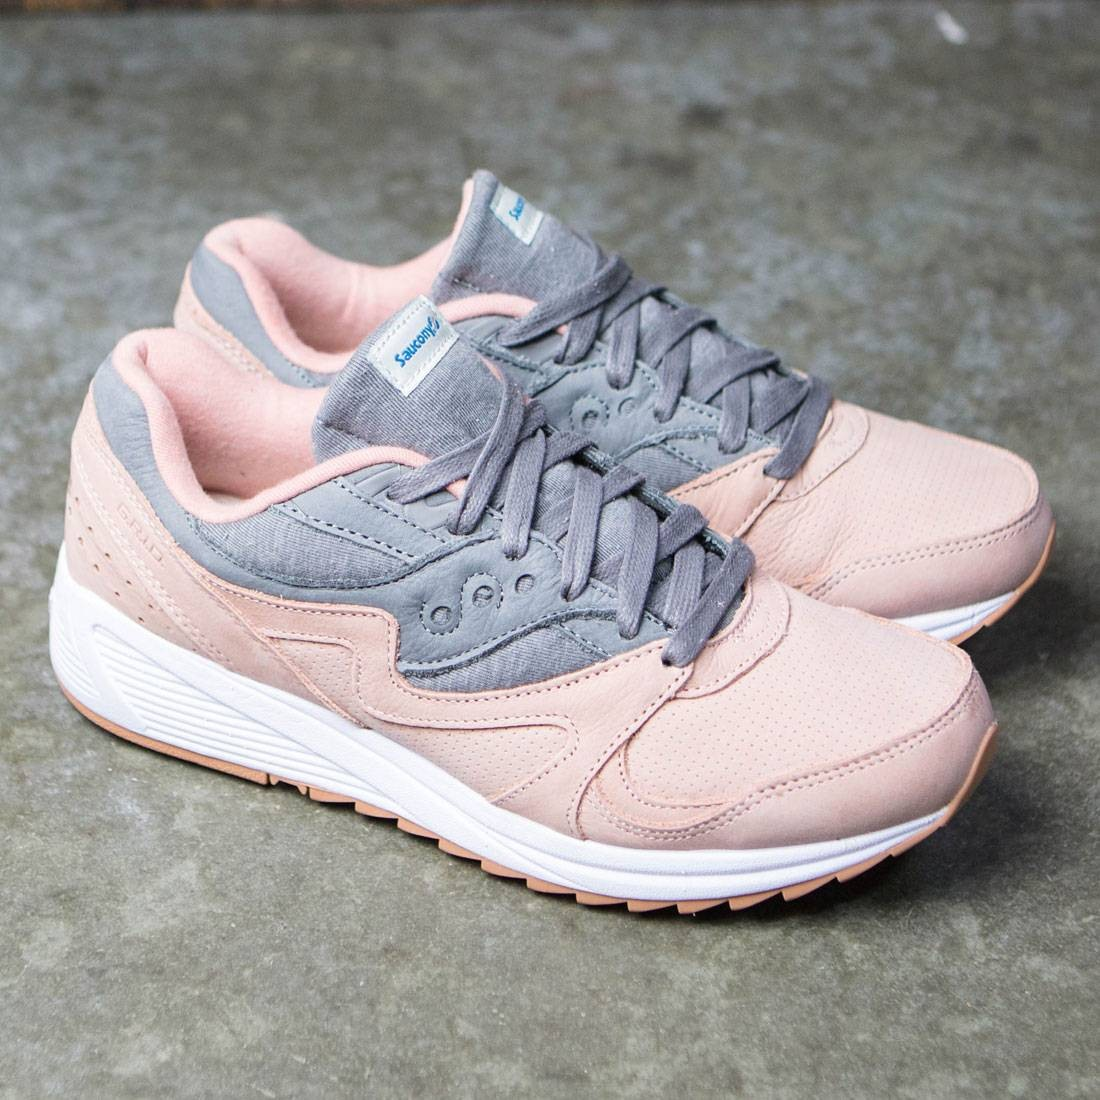 677c693c6297 Buy saucony grid 8000 mens white   Up to OFF53% Discounted